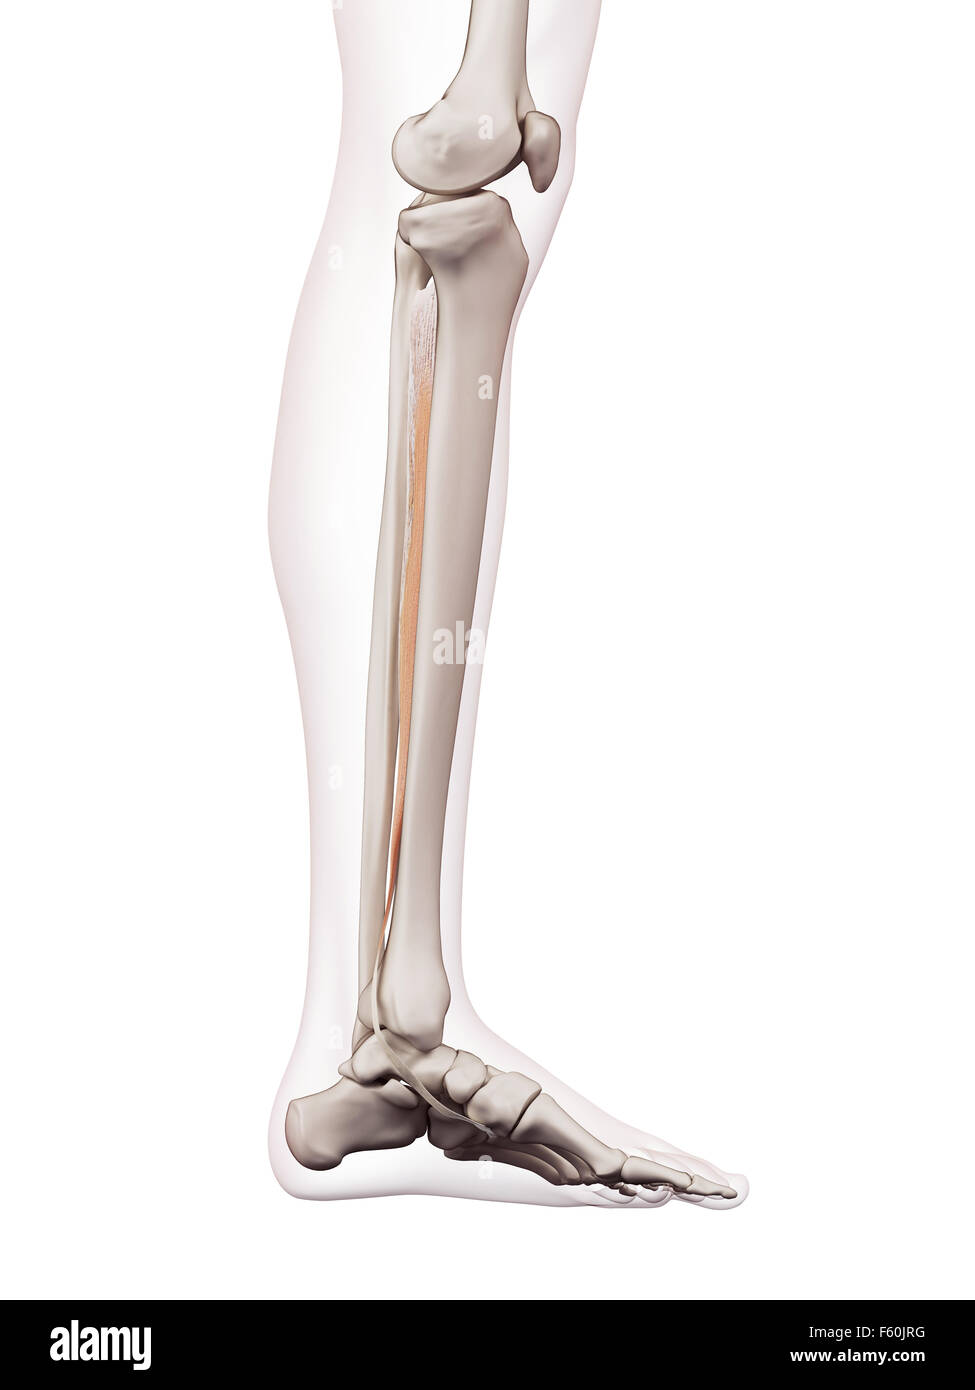 medically accurate muscle illustration of the tibialis posterior ...